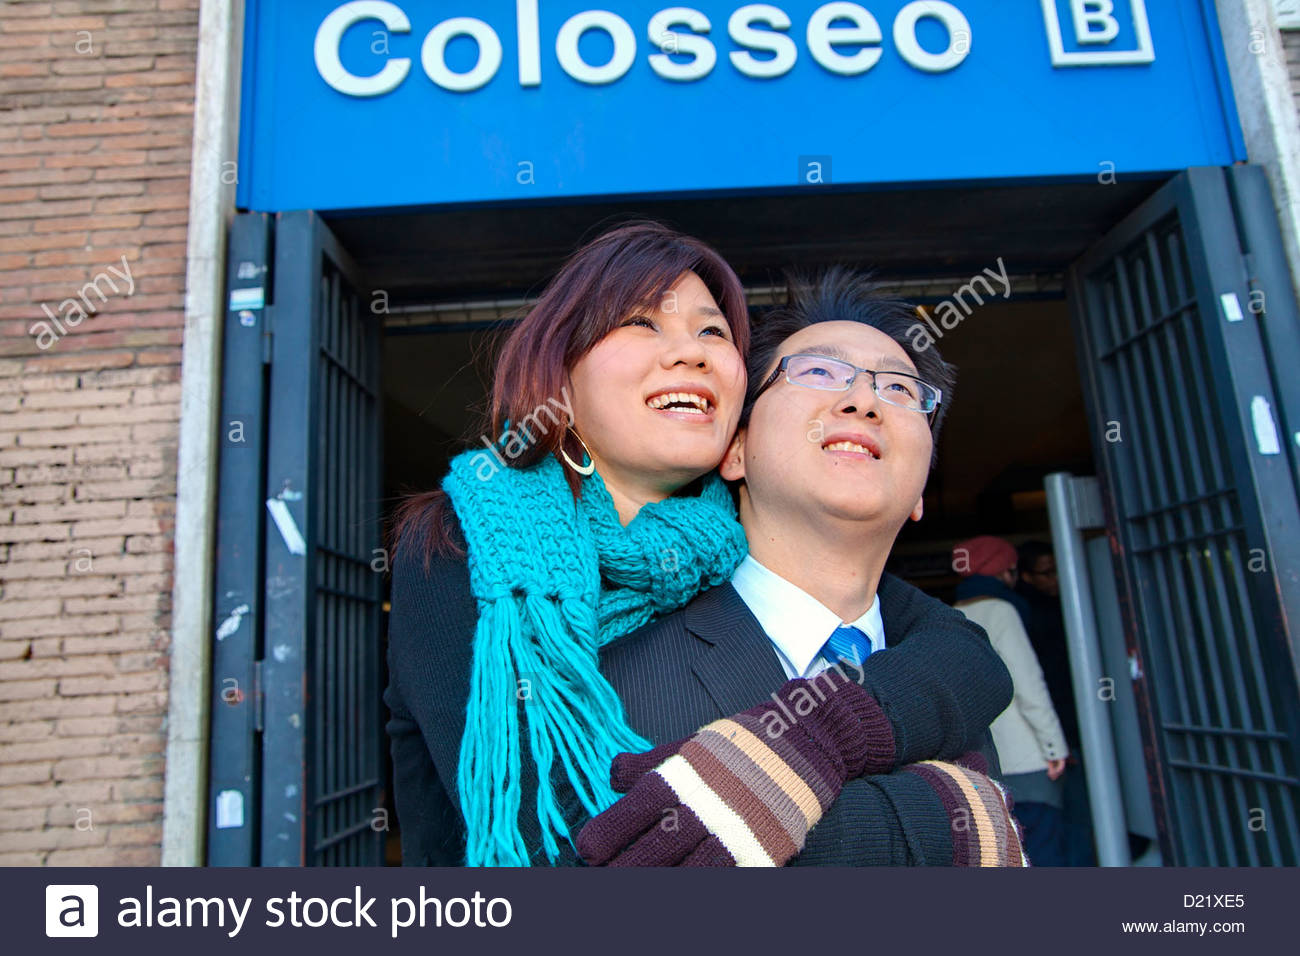 Couple at the Roman Colosseum metro stop - Stock Image